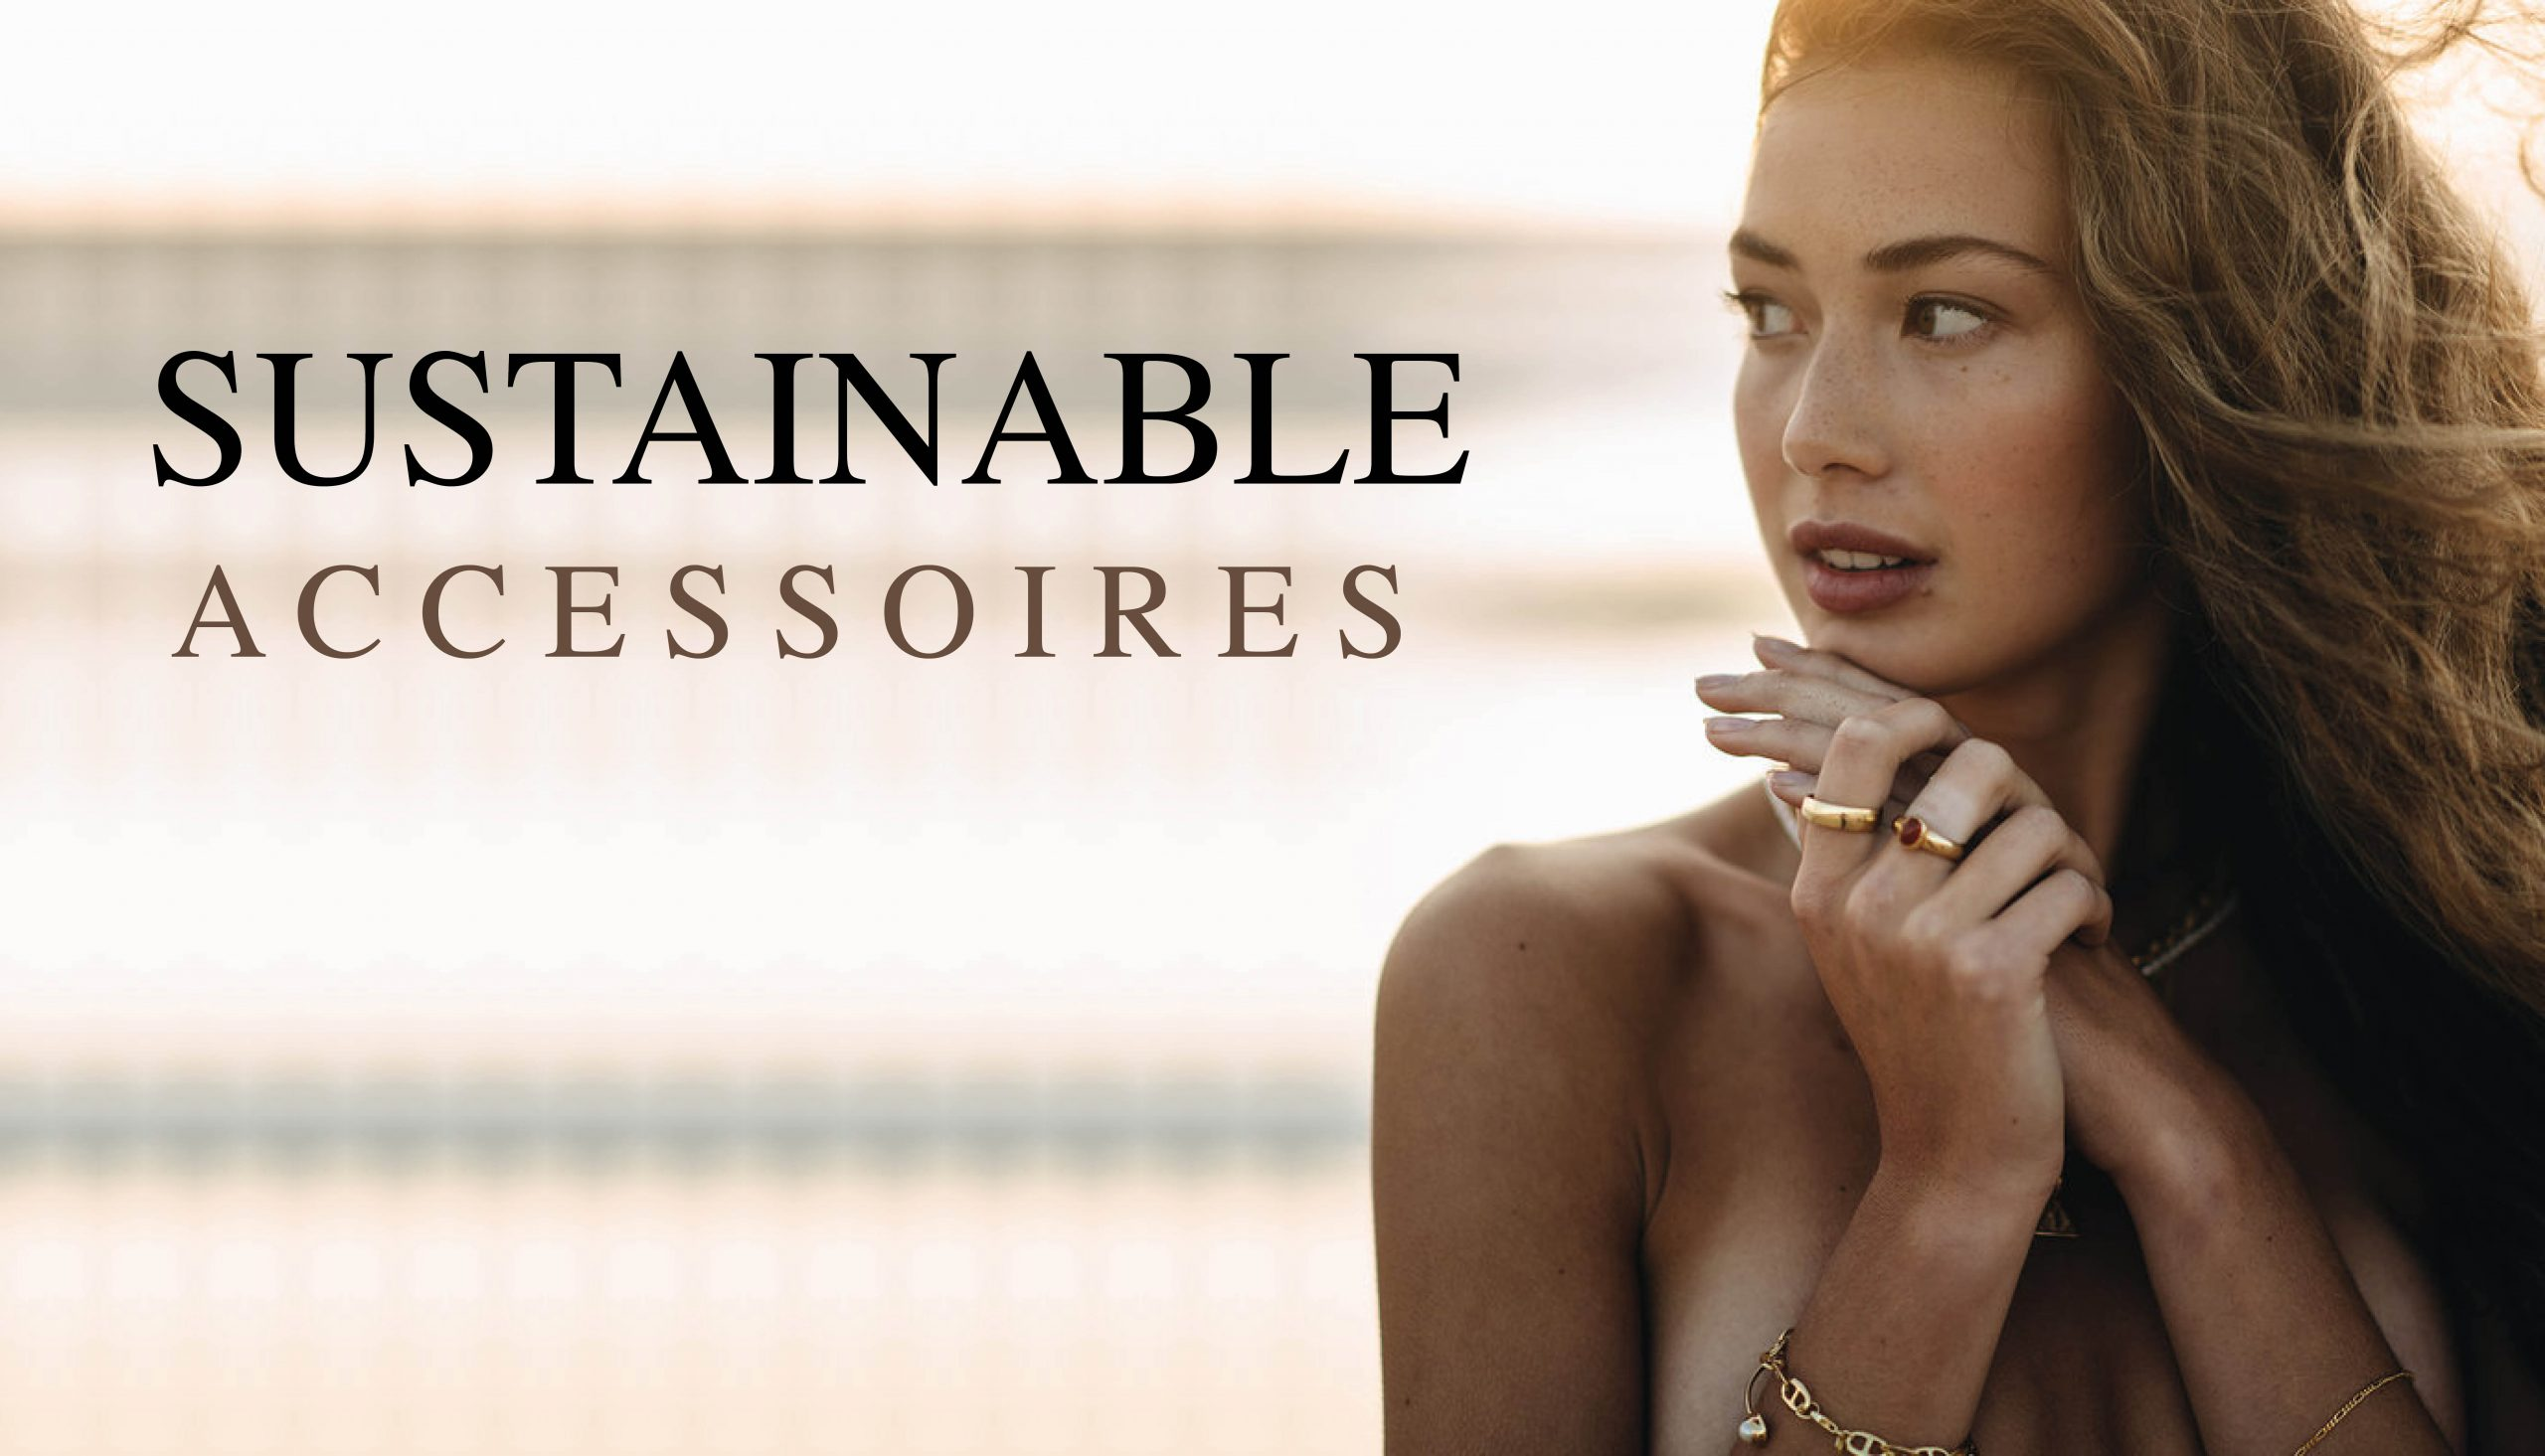 SUSTAINABLE ACCESSOIRES